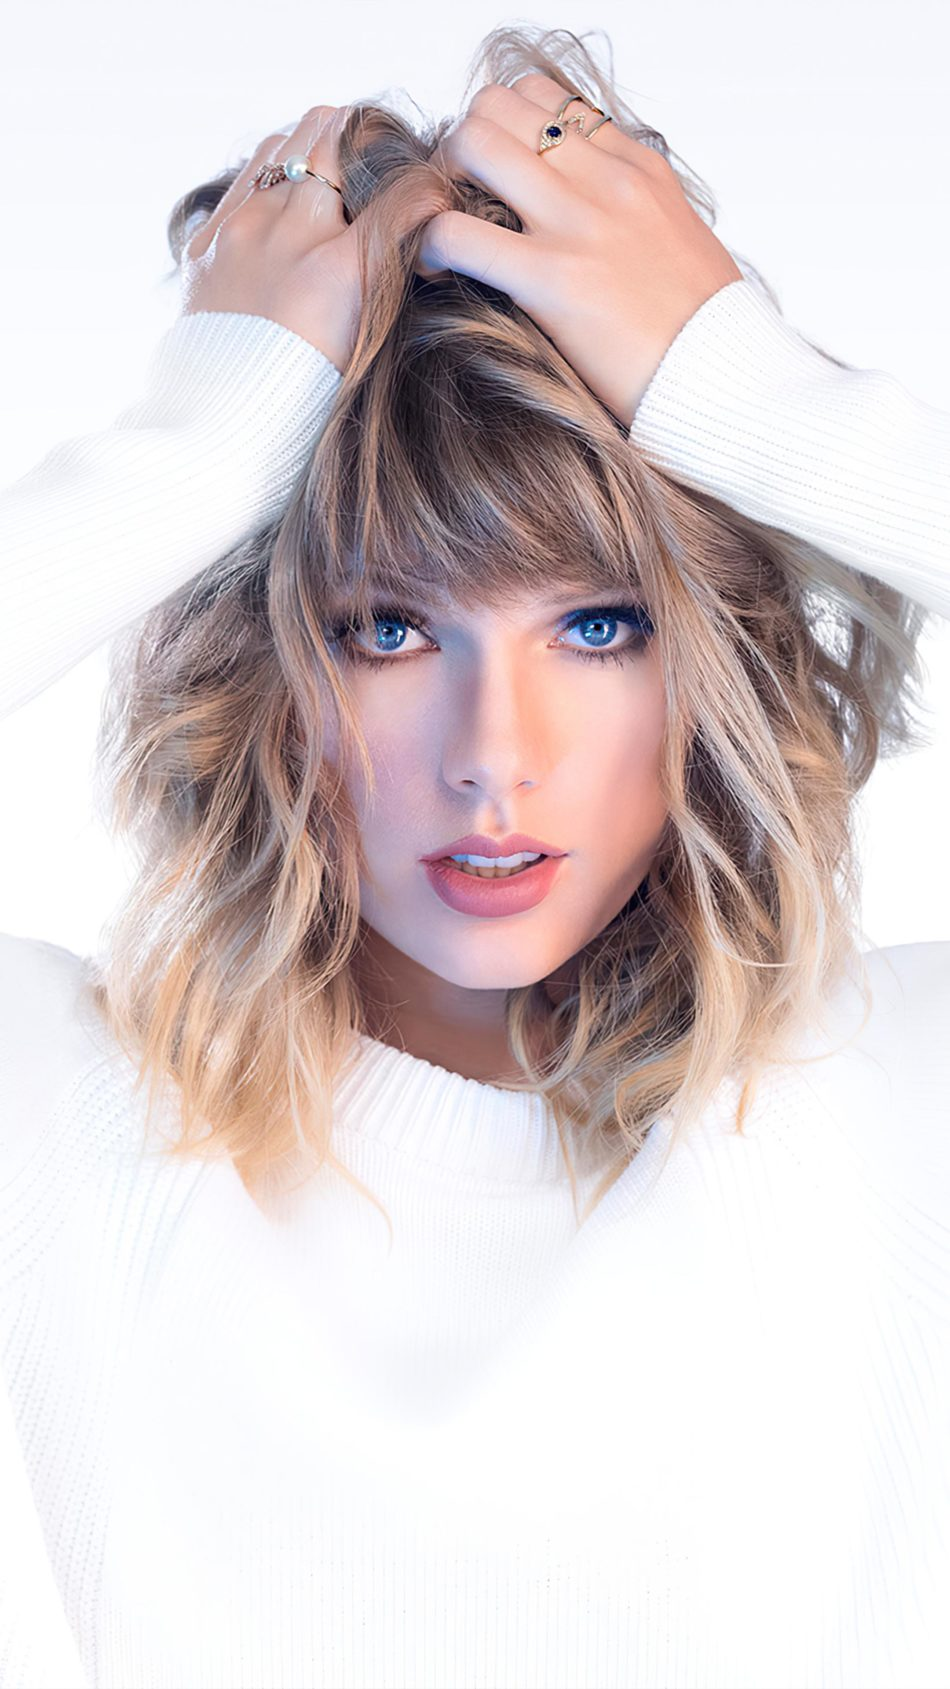 Taylor Swift Blue Eyes White Background 4K Ultra HD Mobile Wallpaper